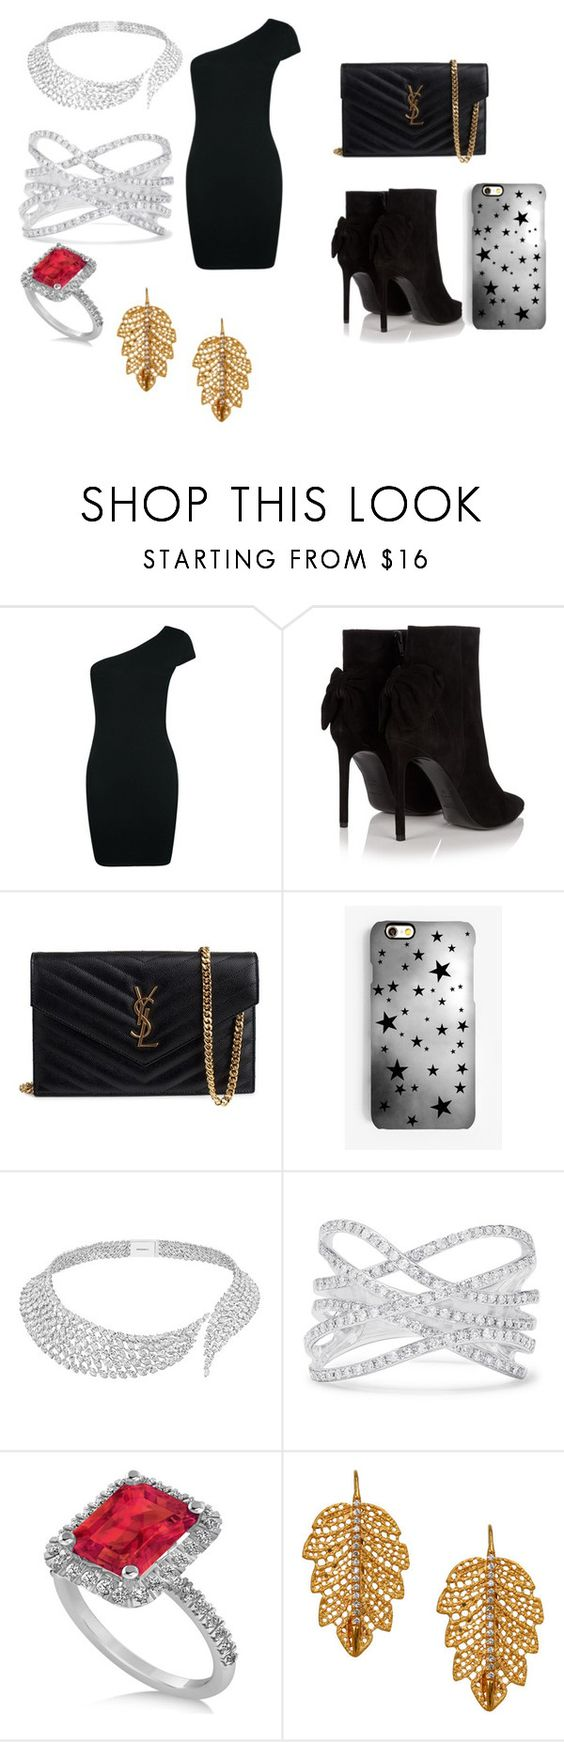 """date night"" by nicole-296 on Polyvore featuring Boohoo, Yves Saint Laurent, Rianna Phillips, Messika, Effy Jewelry, Allurez and Marika"